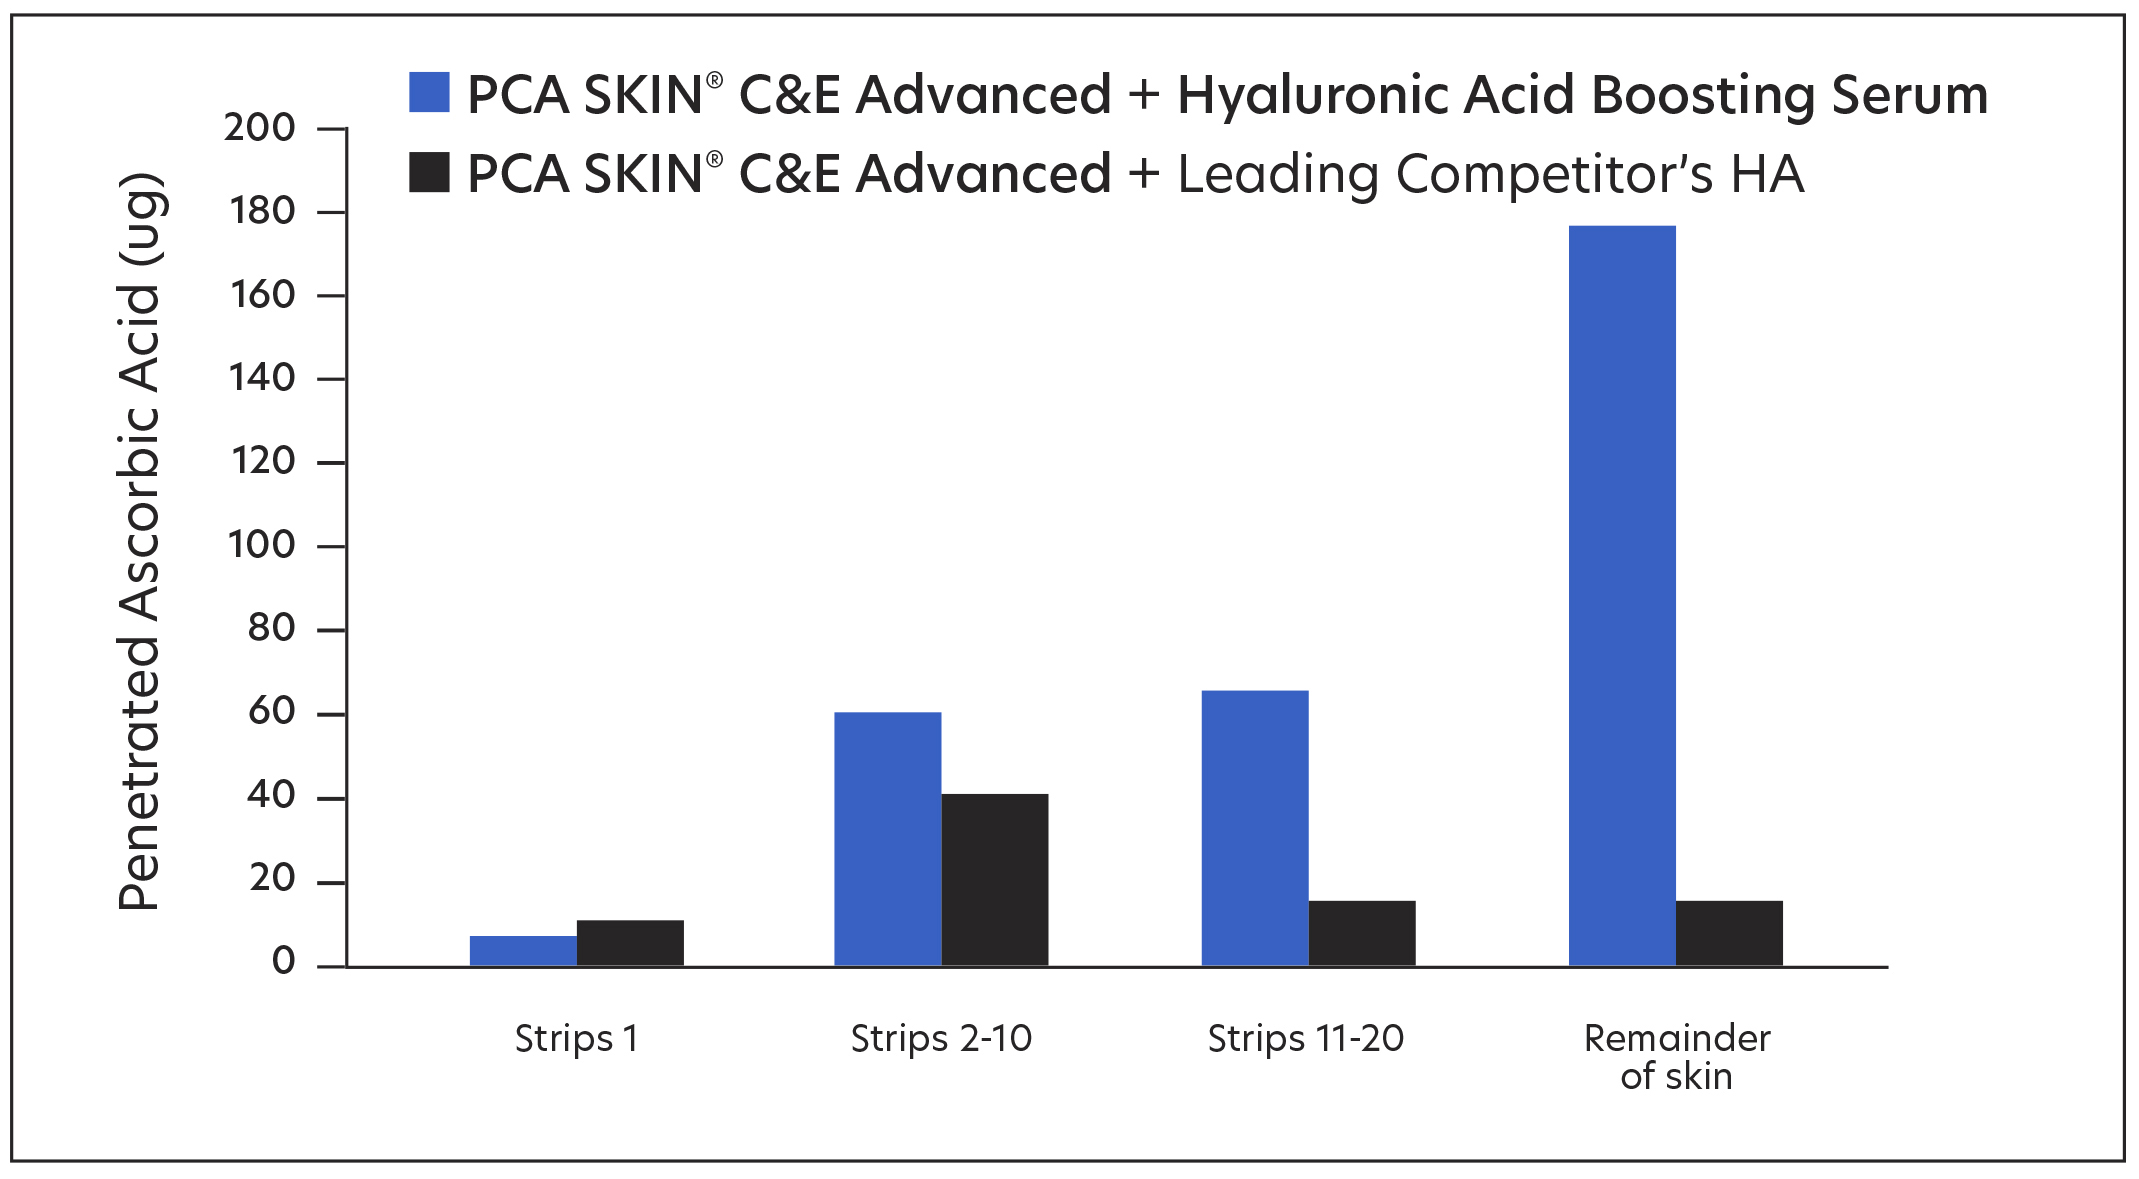 Penetration Results of PCA SKIN C&E Advanced when used with PCA SKIN Hyaluronic Acid Boosting Serum